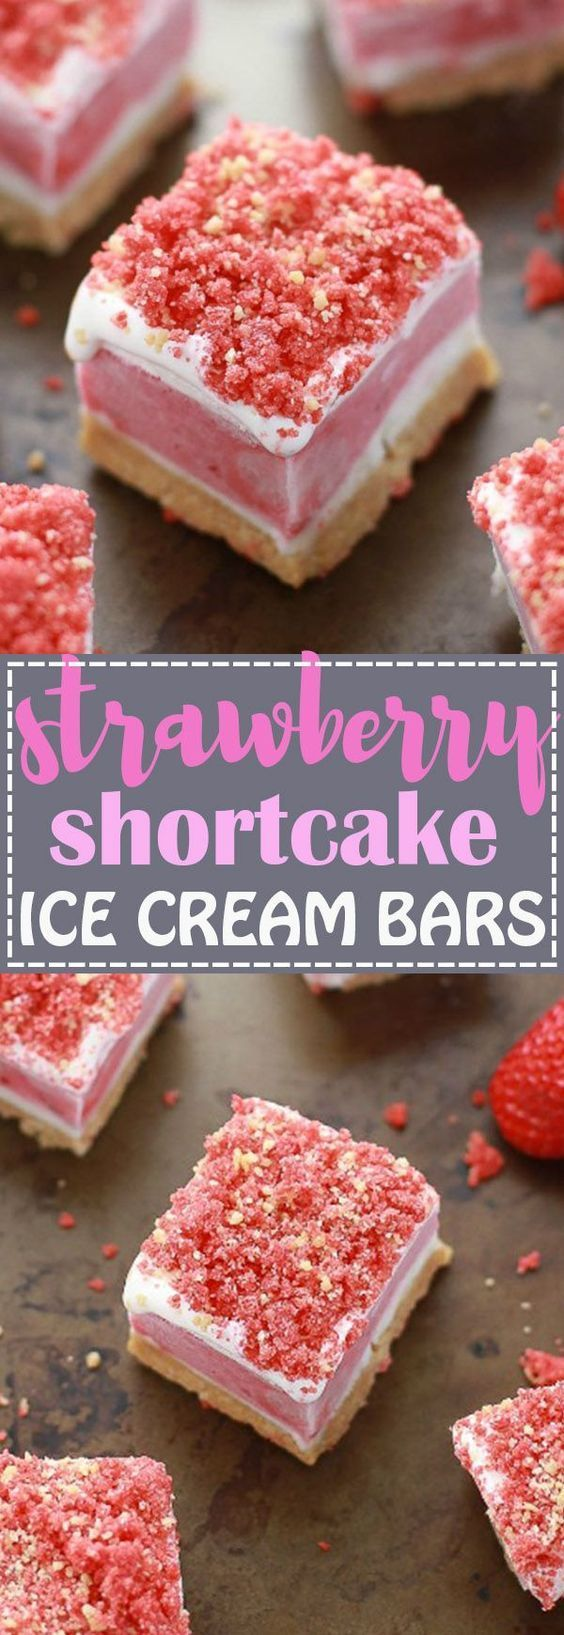 No Bake Strawberry Shortcake Ice Cream Bars has all the flavors you love about the Good Humor Popsicles in an easy no bake icebox treat. Best of all, this recipe is super simple to make with creamy vanilla ice cream, strawberry sorbet and crushed Oreo coo